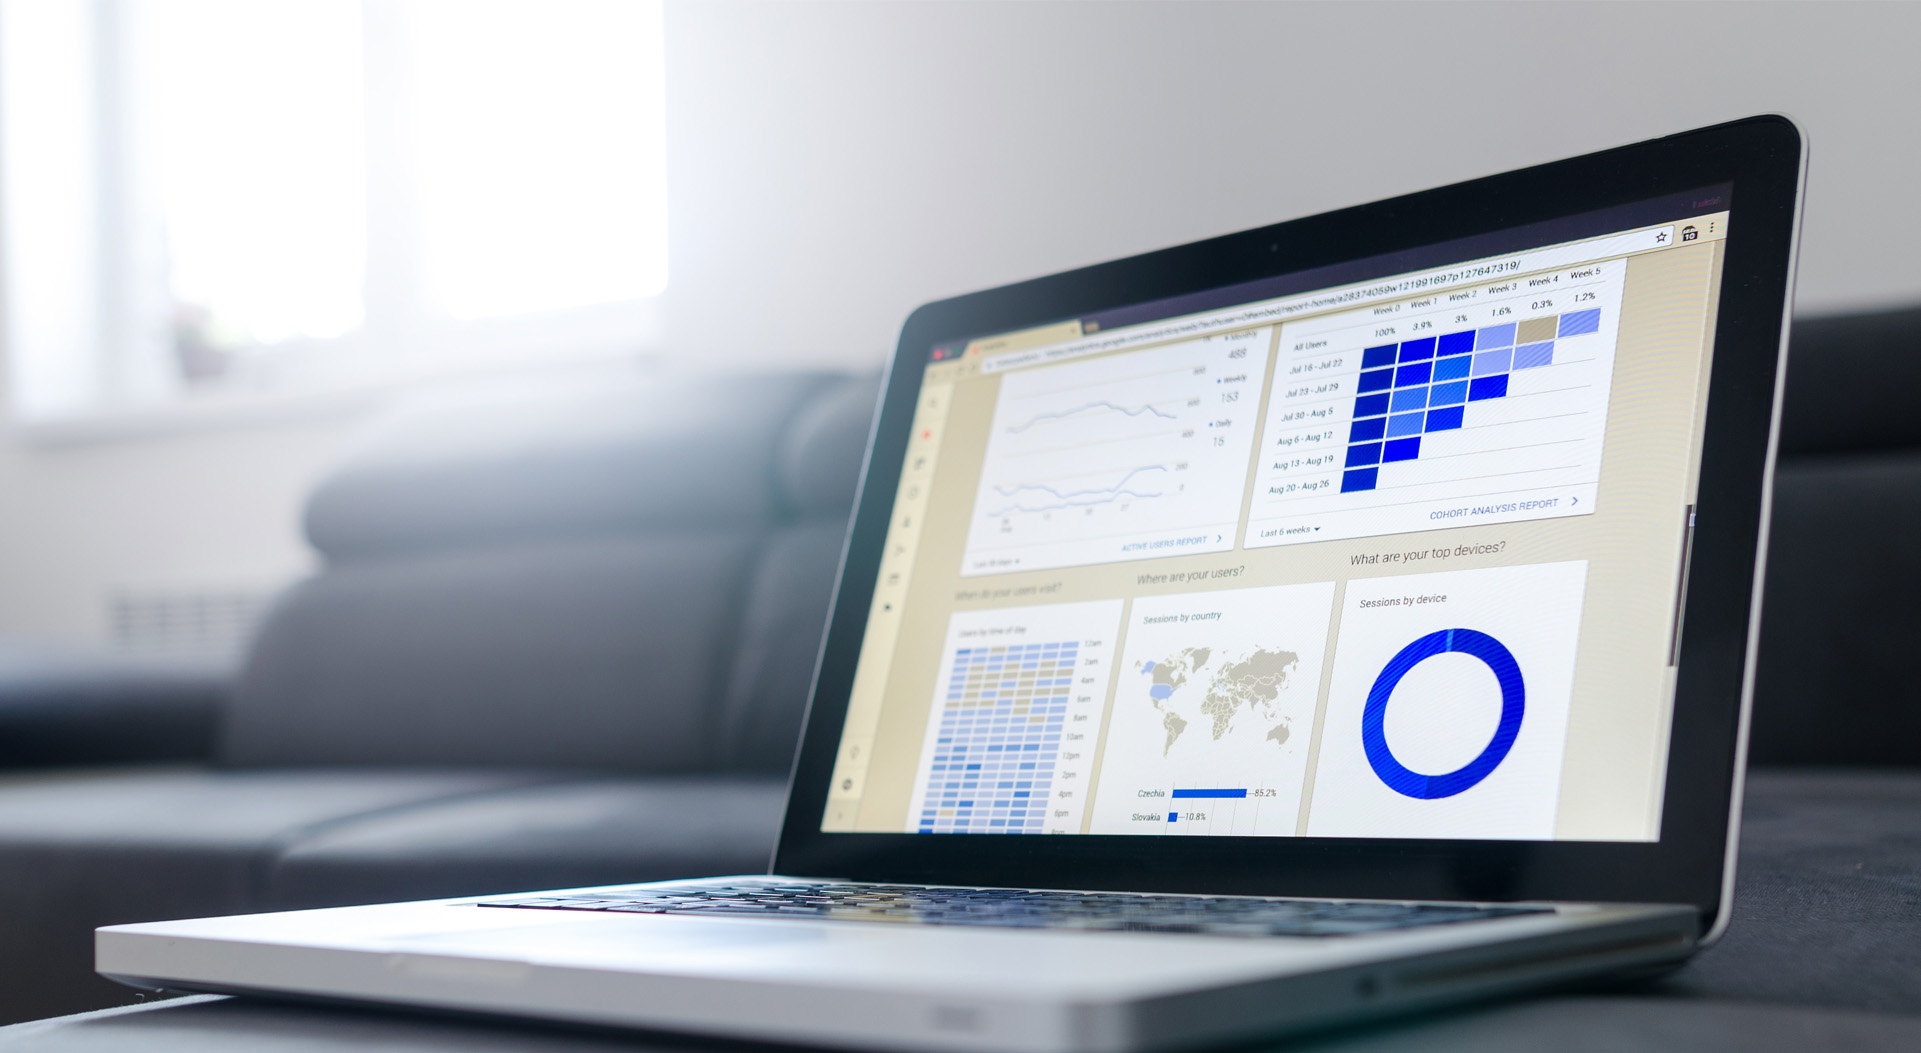 Unzyp Business Intelligence | Credits to : https://www.pexels.com/@goumbik